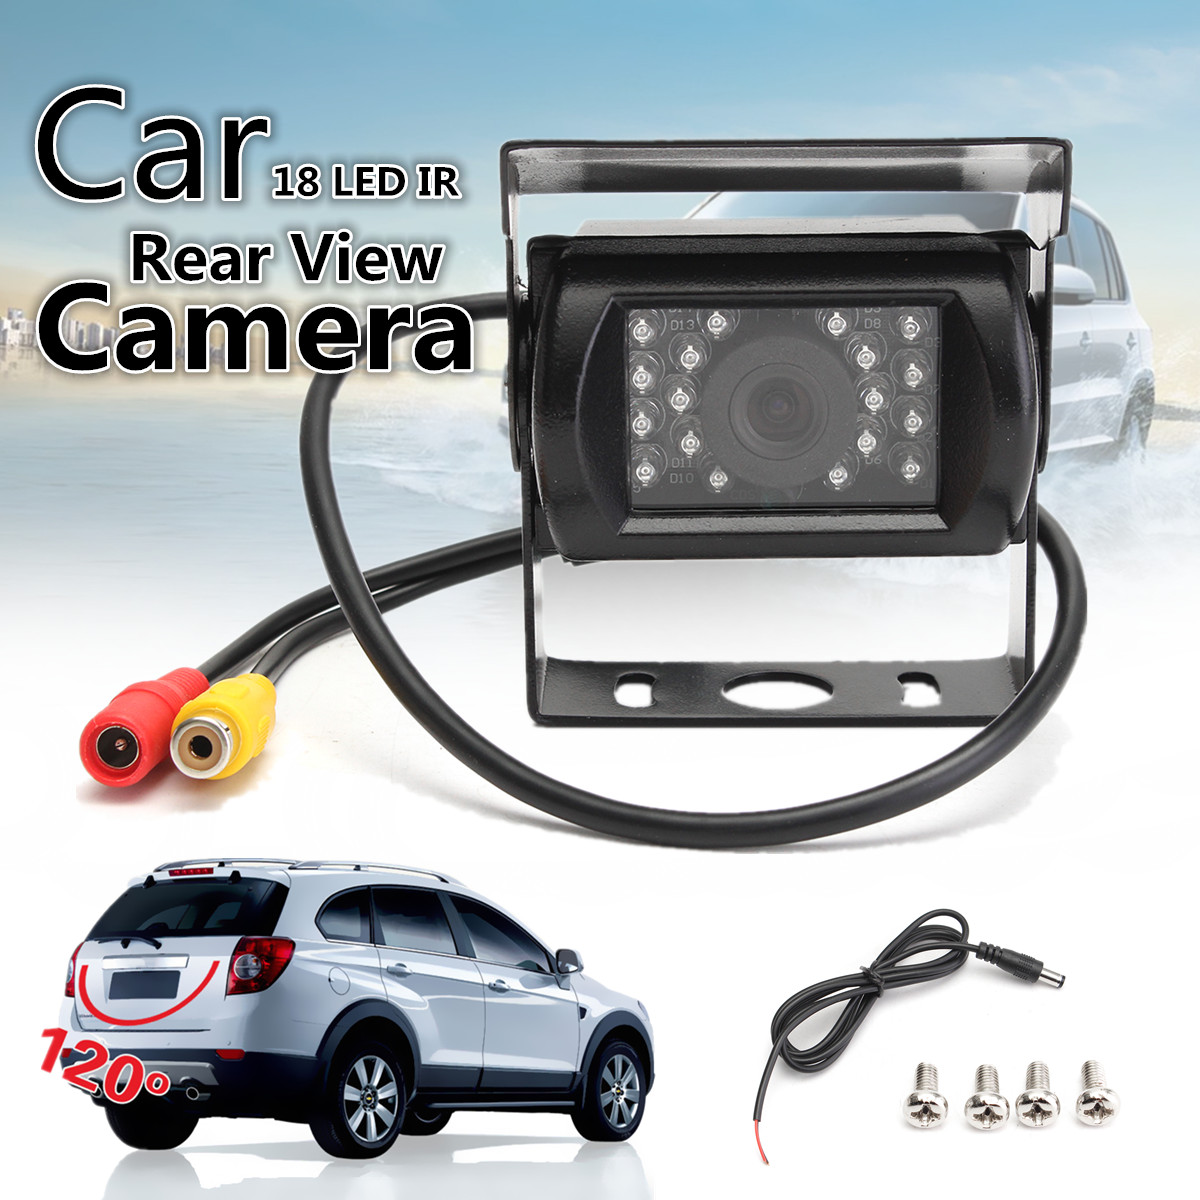 18 LED IR Car Rear View Reverse Reversing Backup Camera Waterproof Night Vision